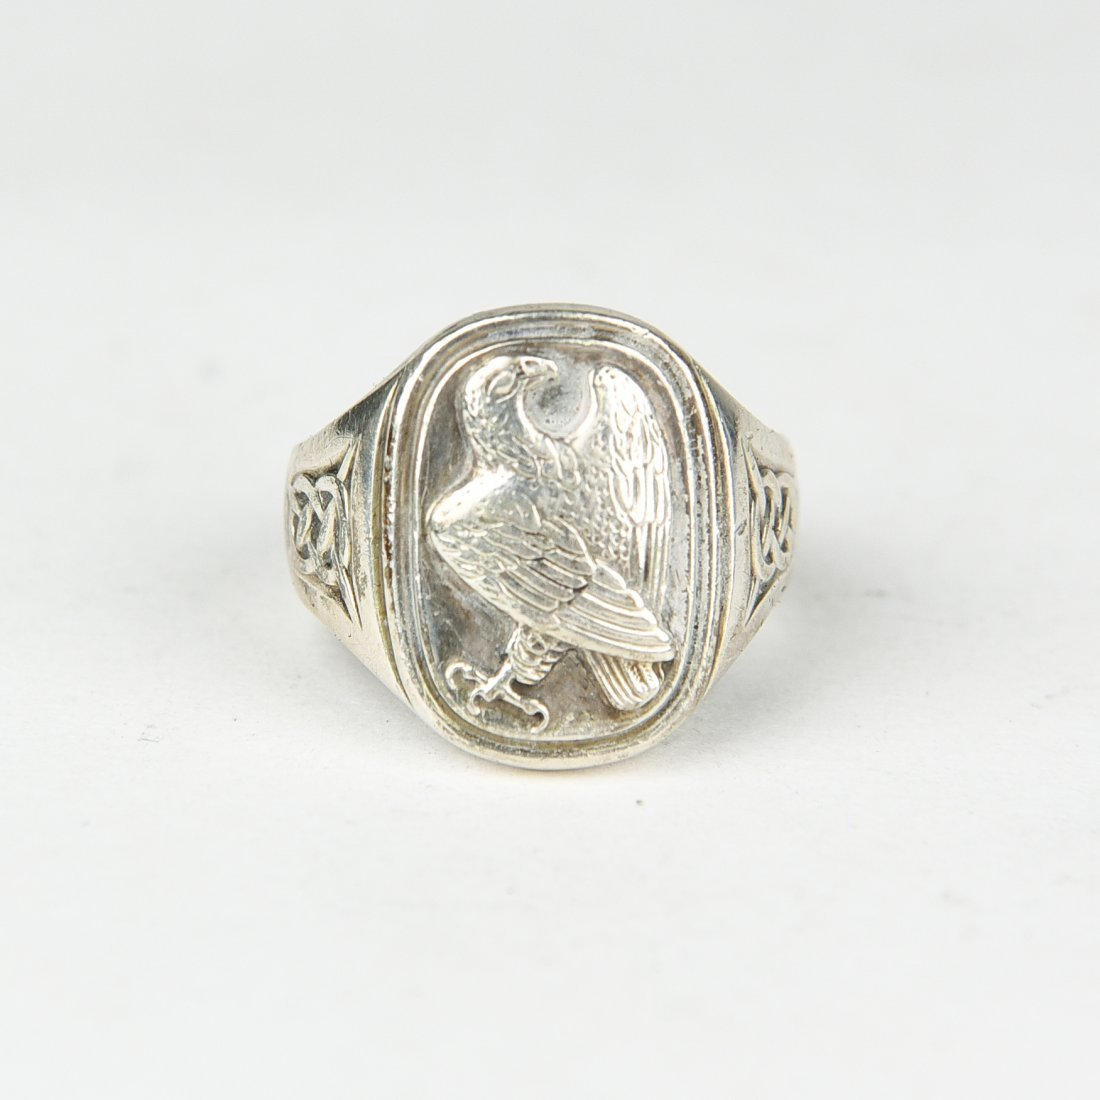 GEORG JENSEN SILVER EAGLE RING